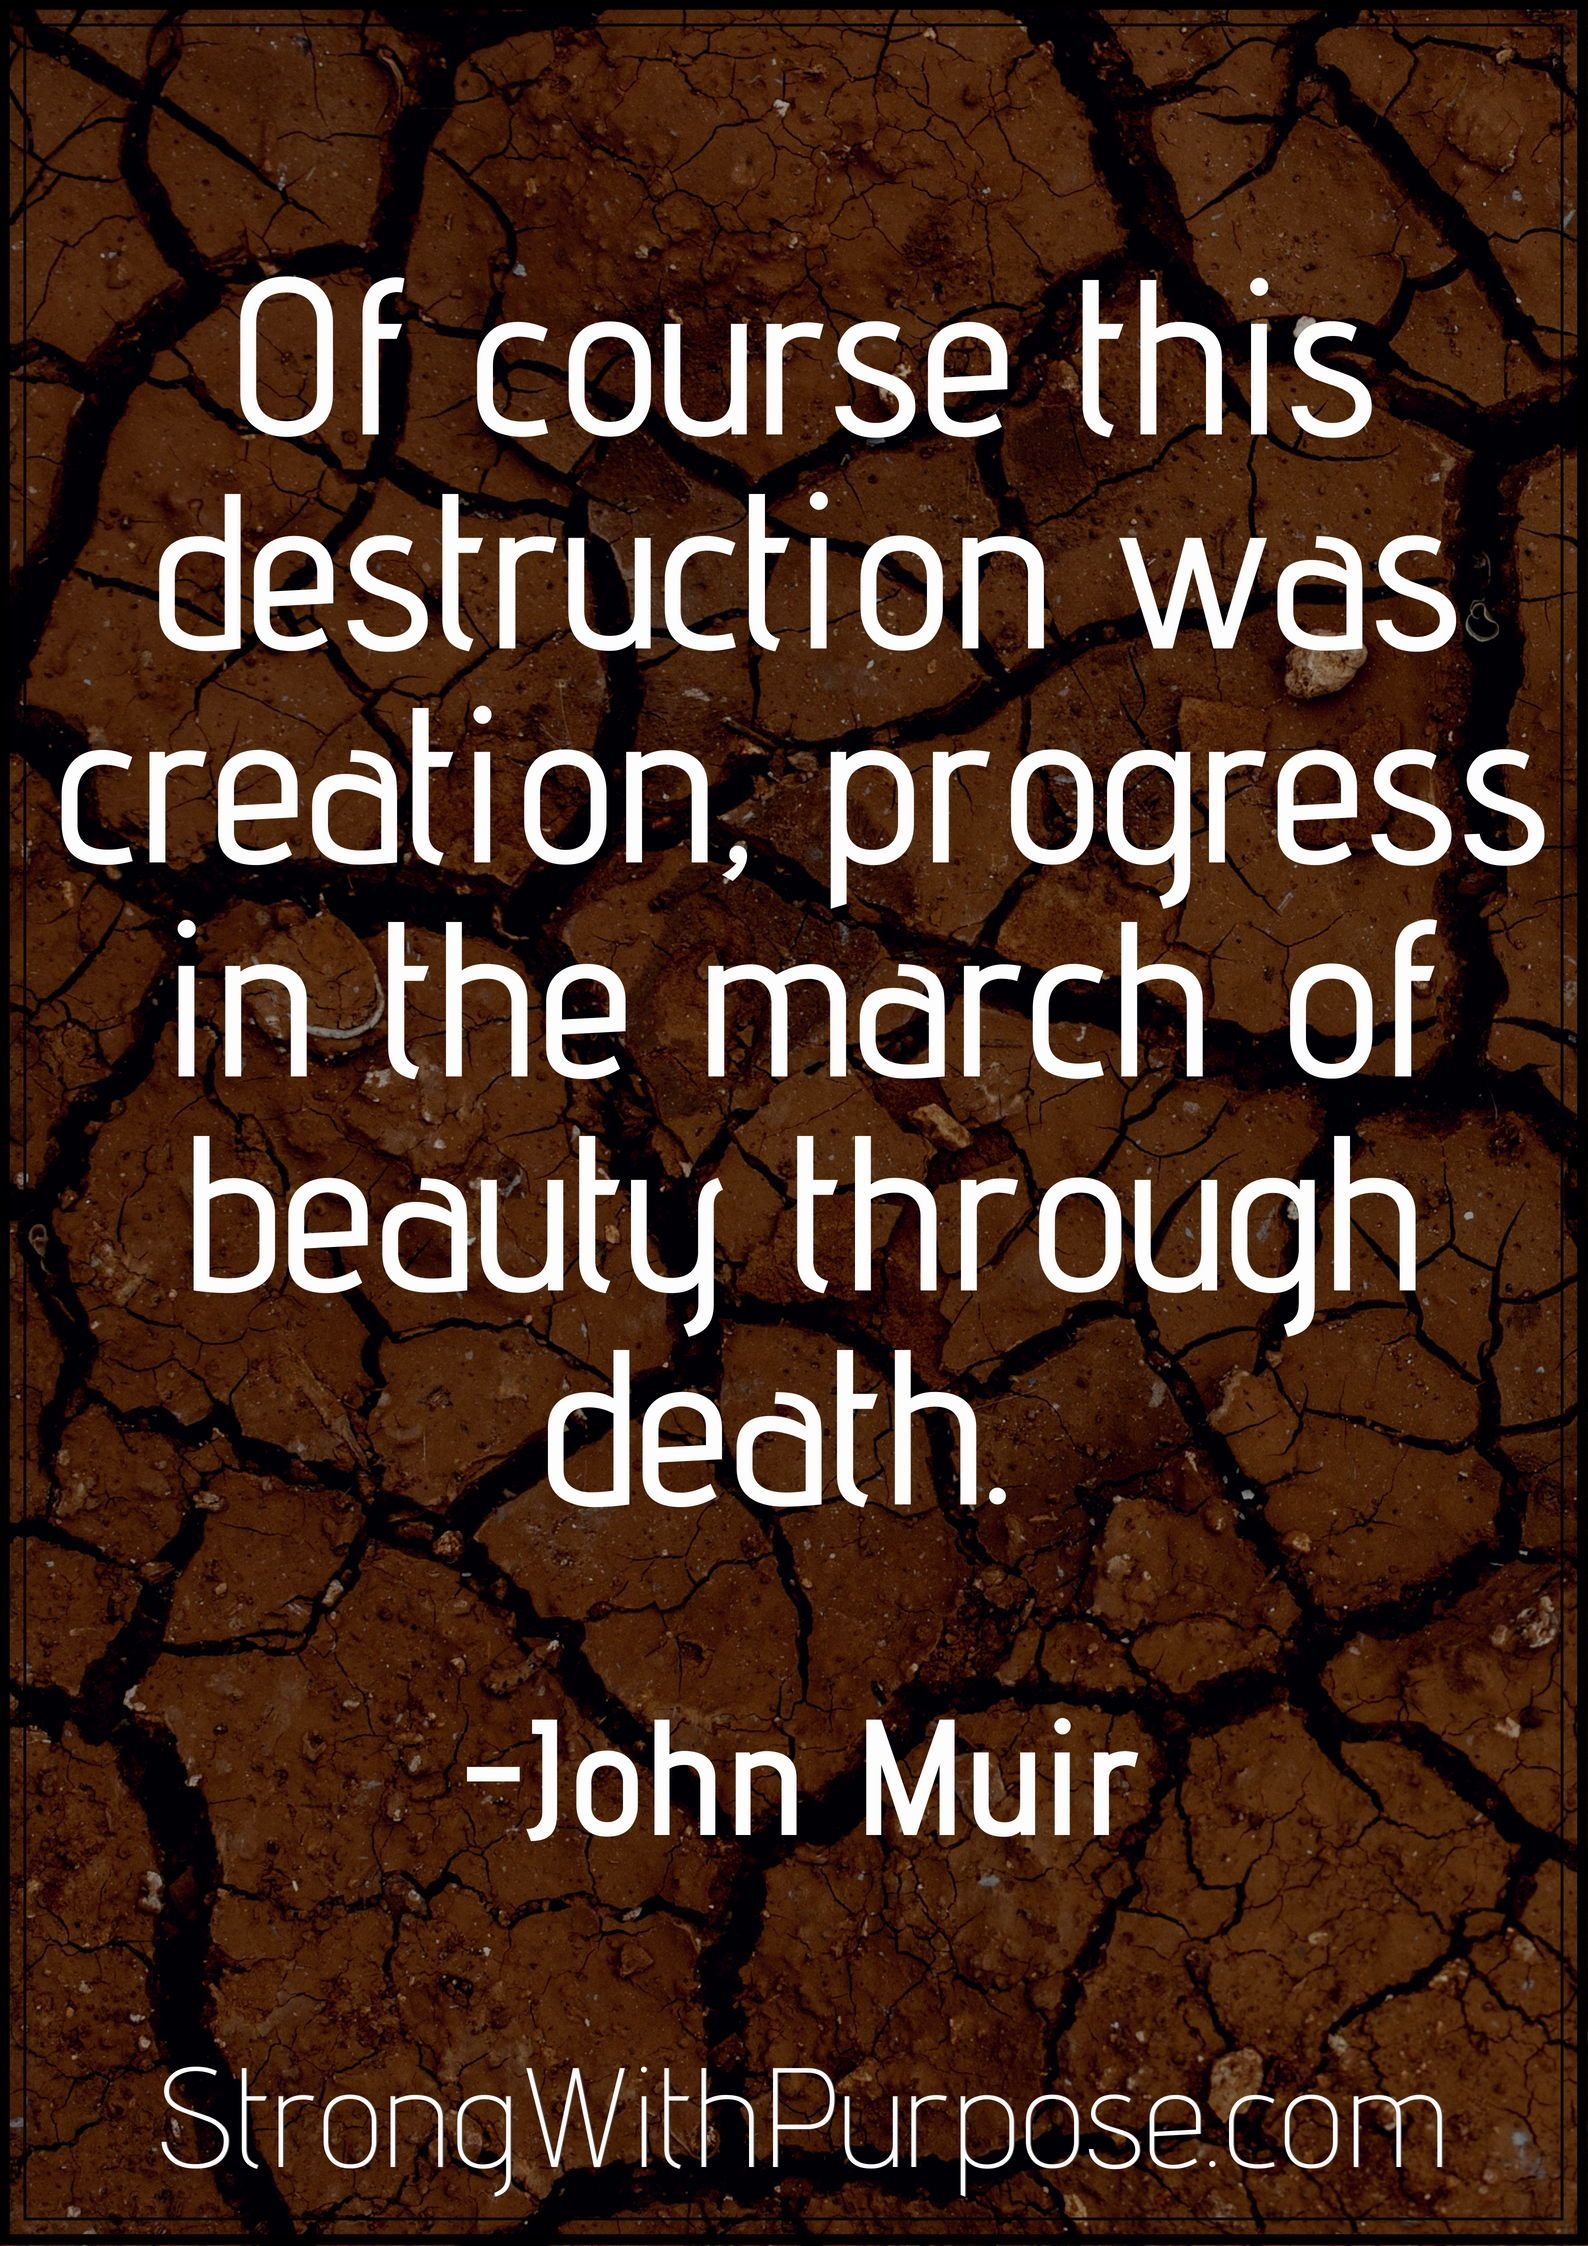 5 John Muir Quotes About Nature To Ignite Your Wild Spirit Quotes